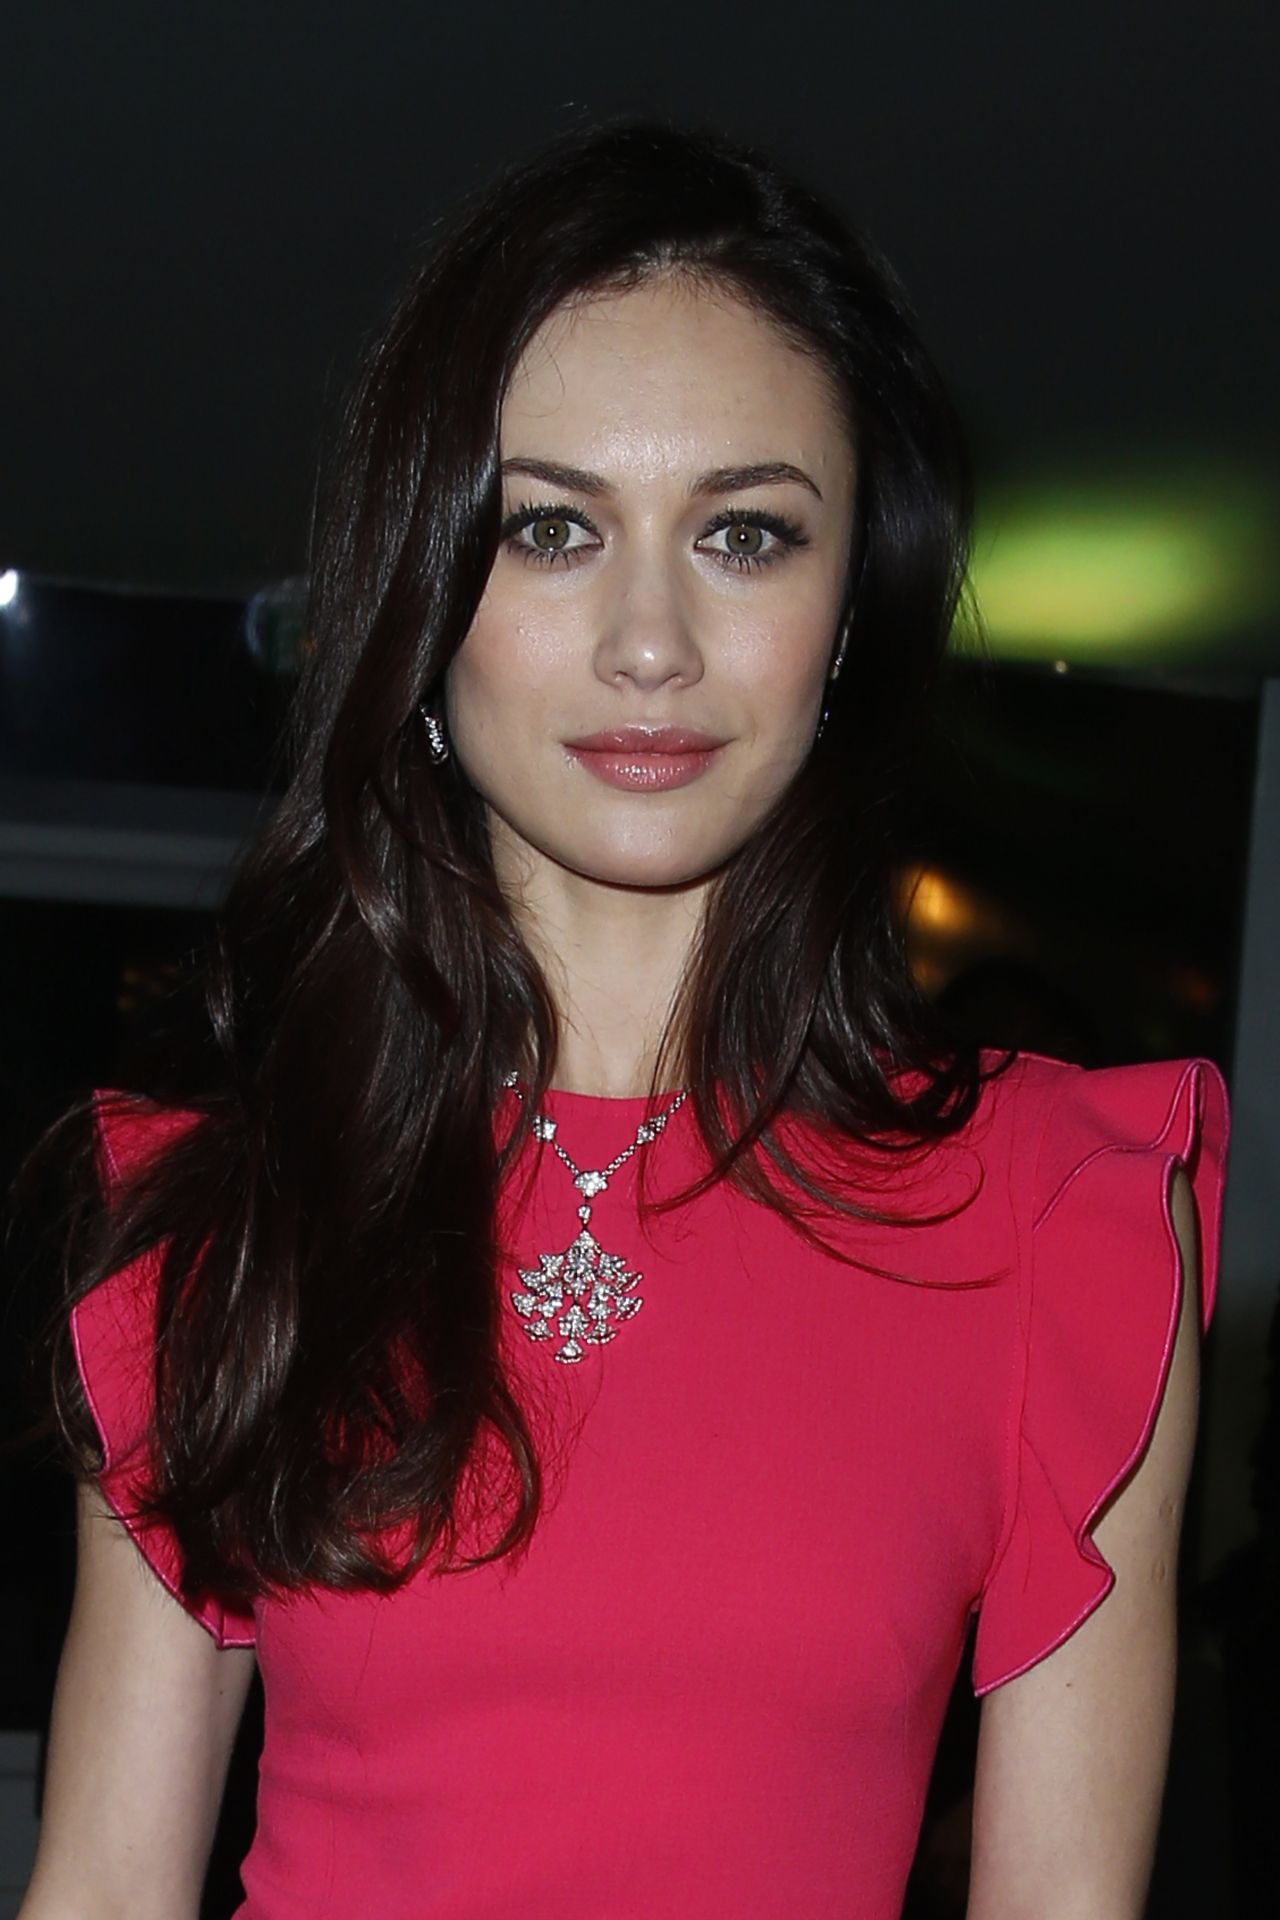 olga kurylenko hd images full hd pictures. Black Bedroom Furniture Sets. Home Design Ideas